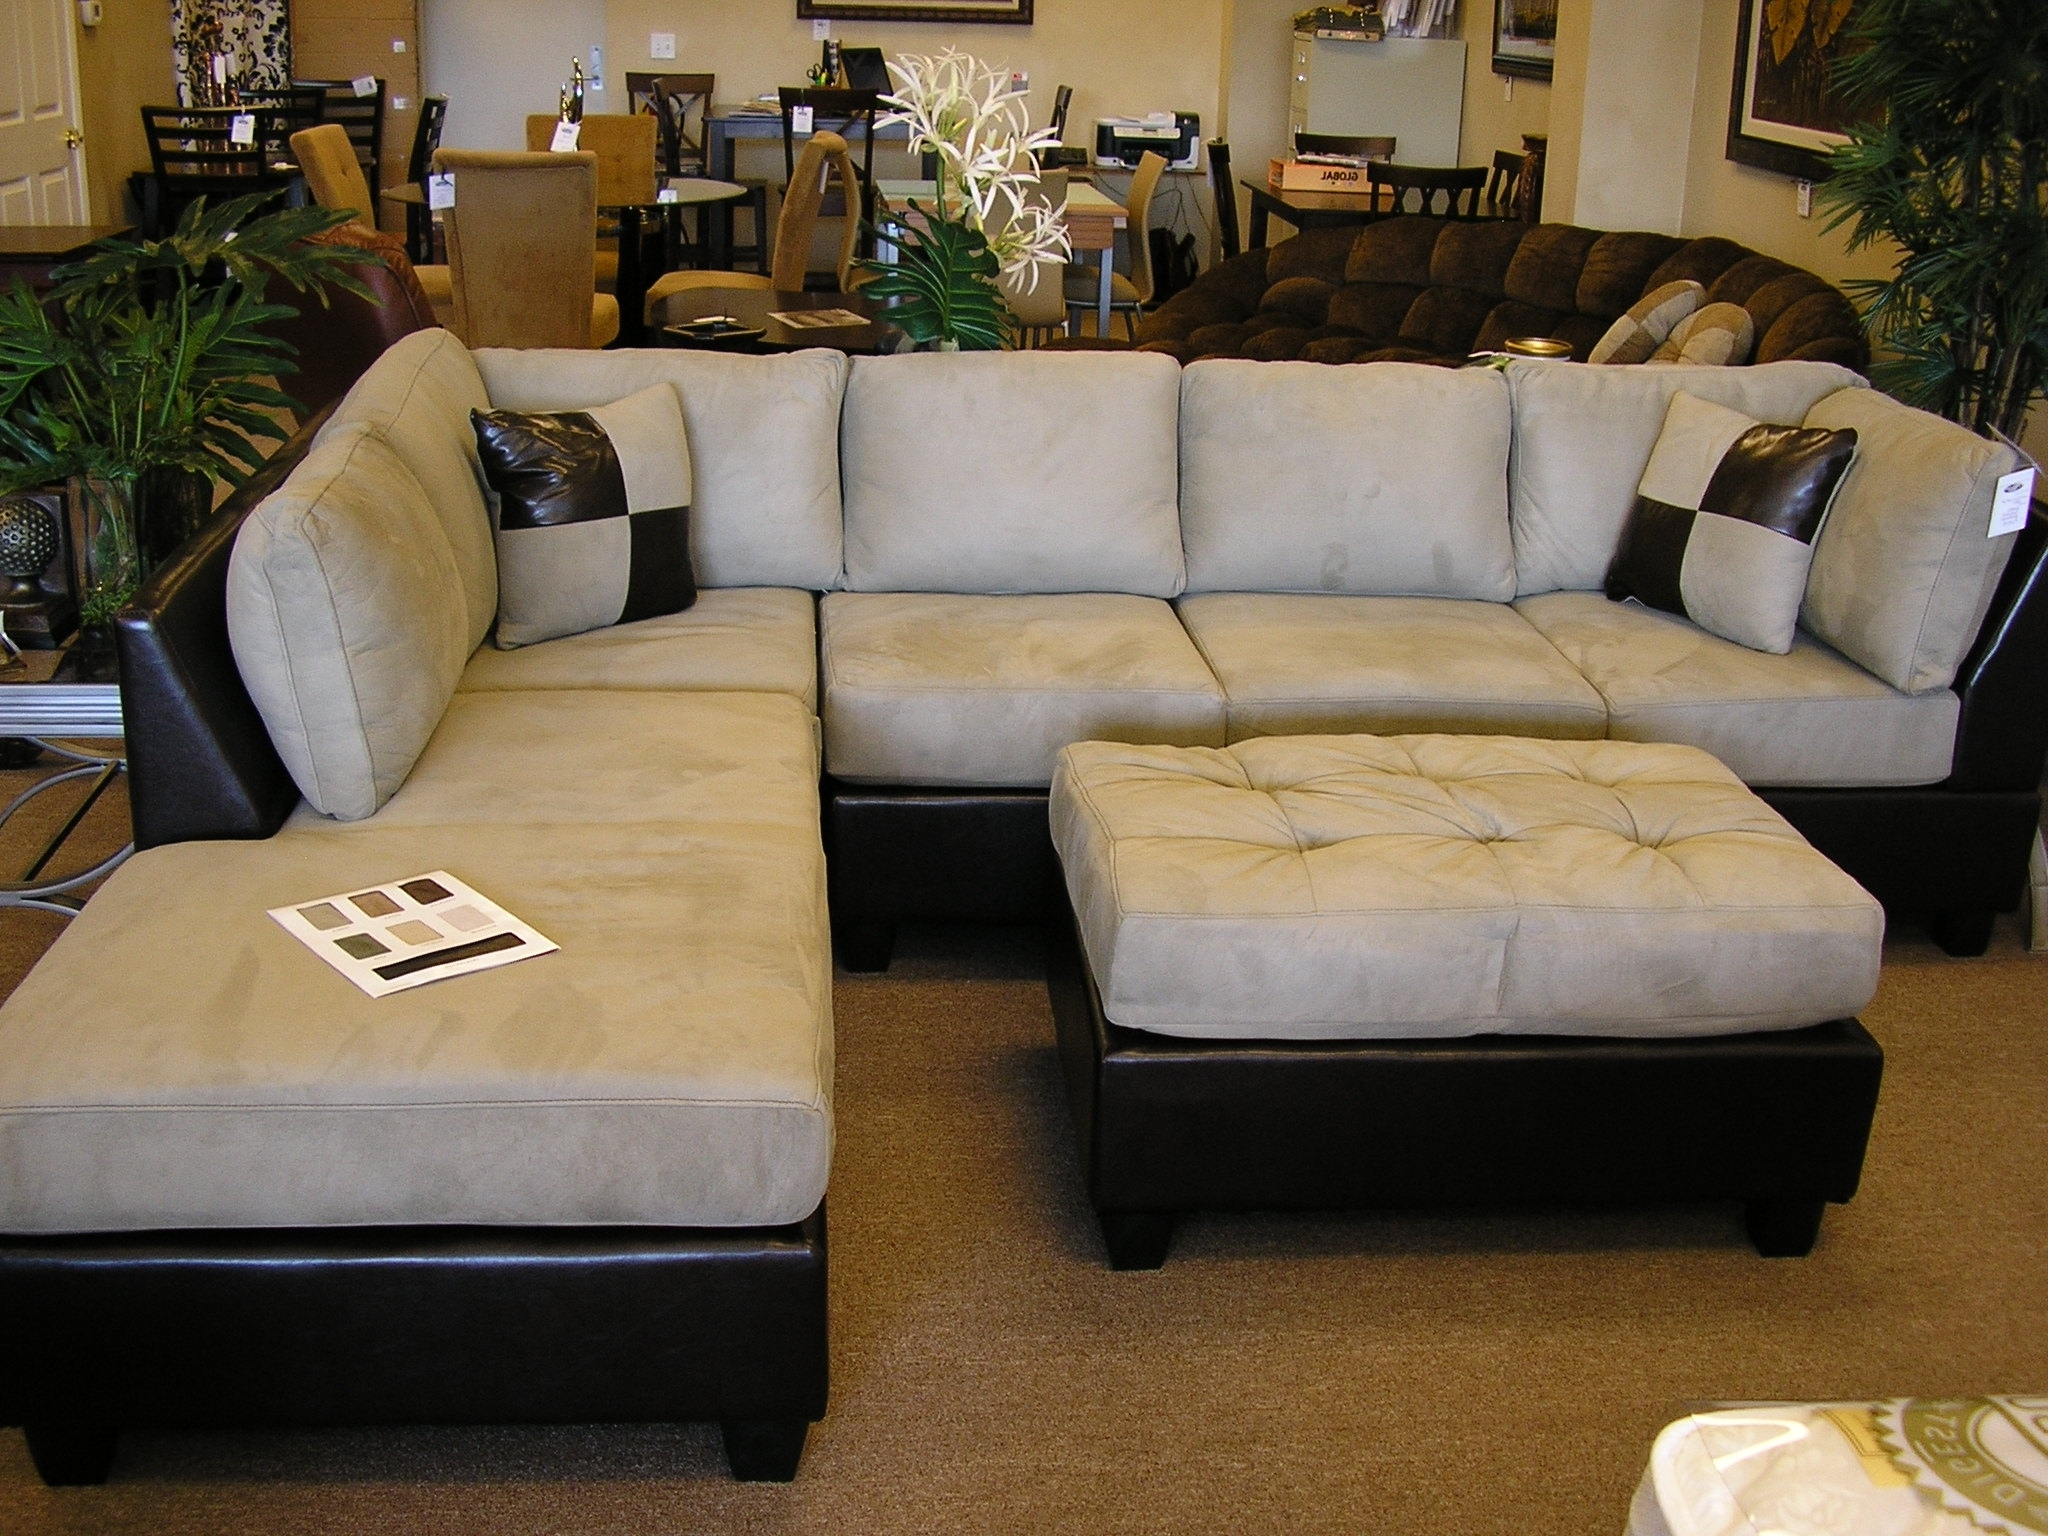 Sectional Sofa Design: Beautiful Sectional Sofas With Chaise For Most Popular Sectionals With Reversible Chaise (View 5 of 15)